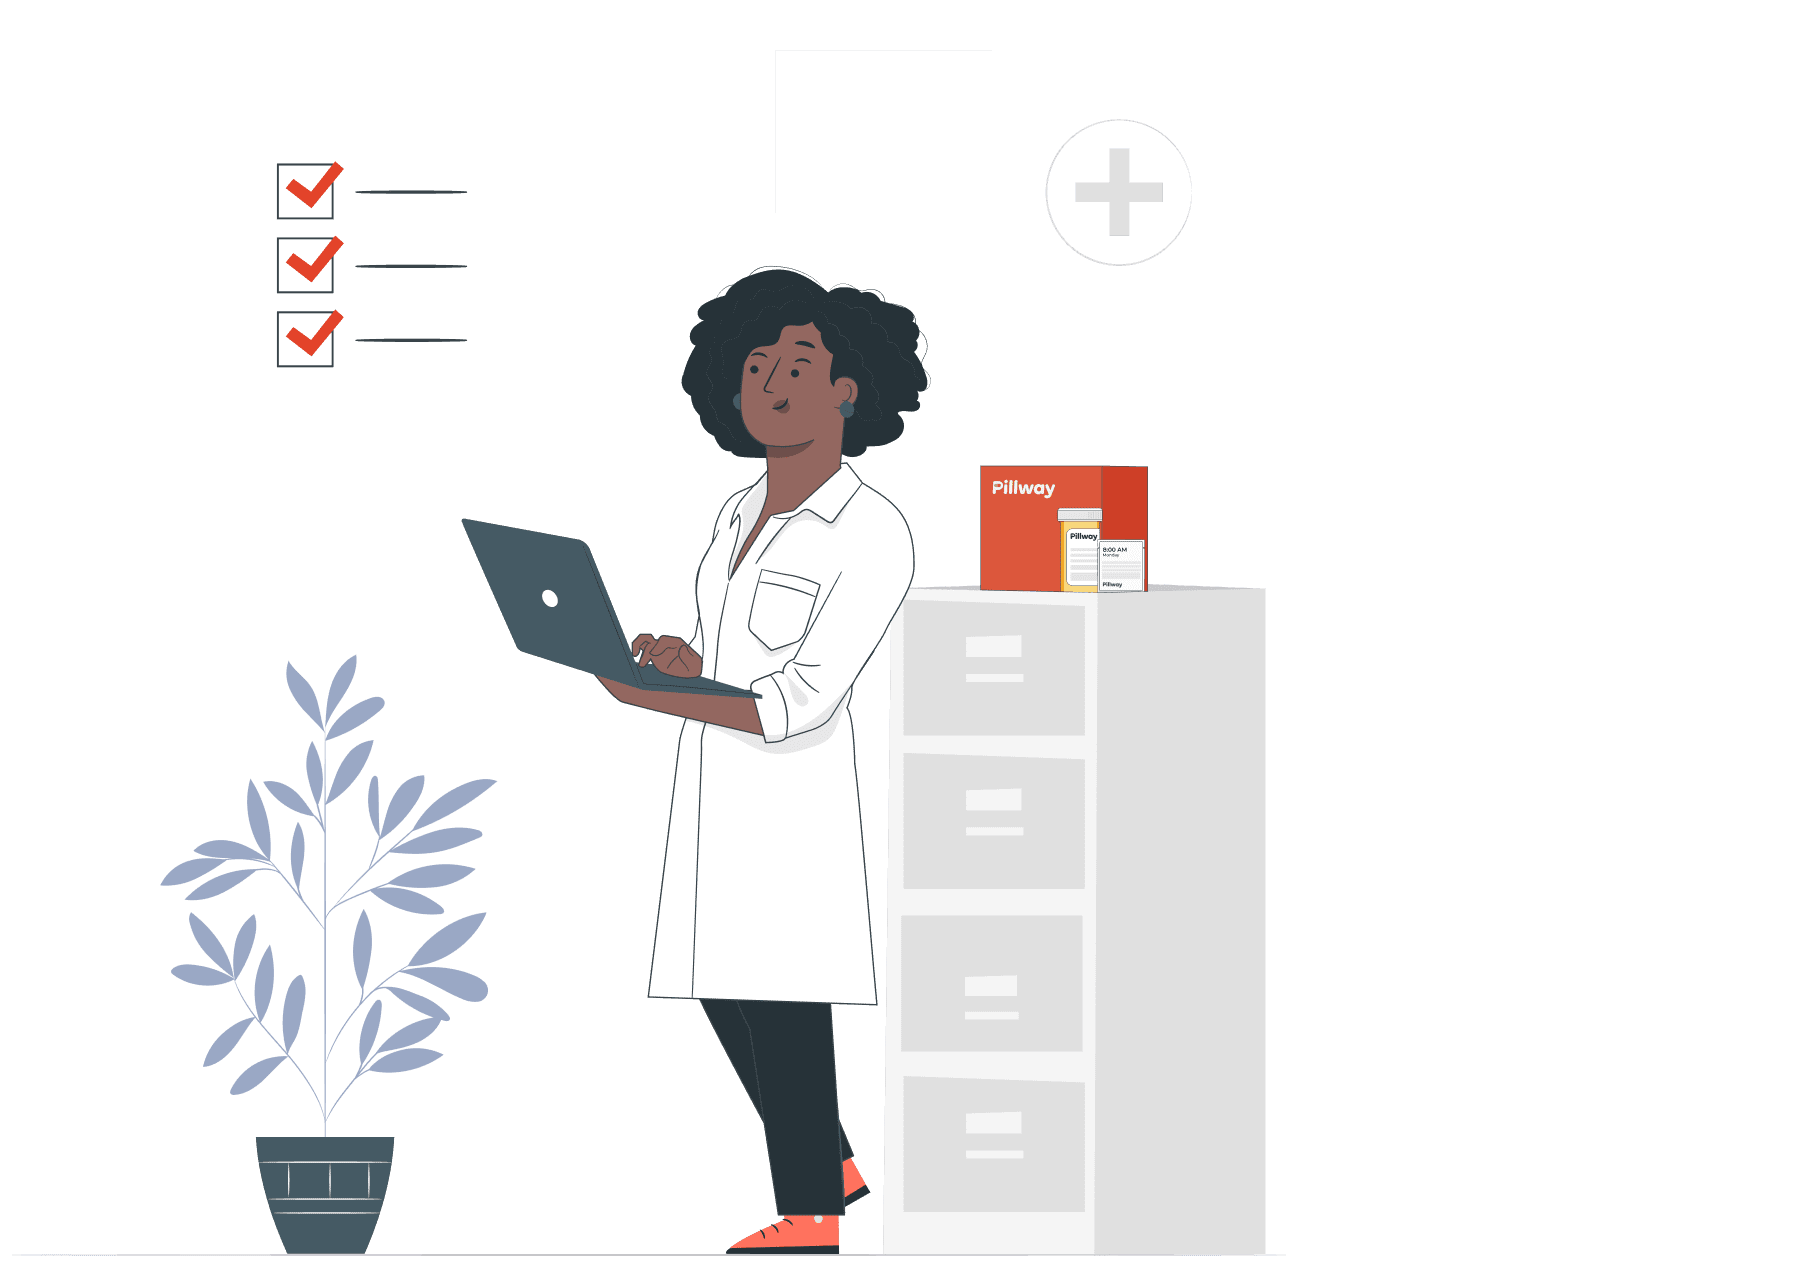 Female pharmacist checking the prescription on her tablet with a red Pillway box, medicine vile and Medicine packet sitting on top of a filing cabinet.